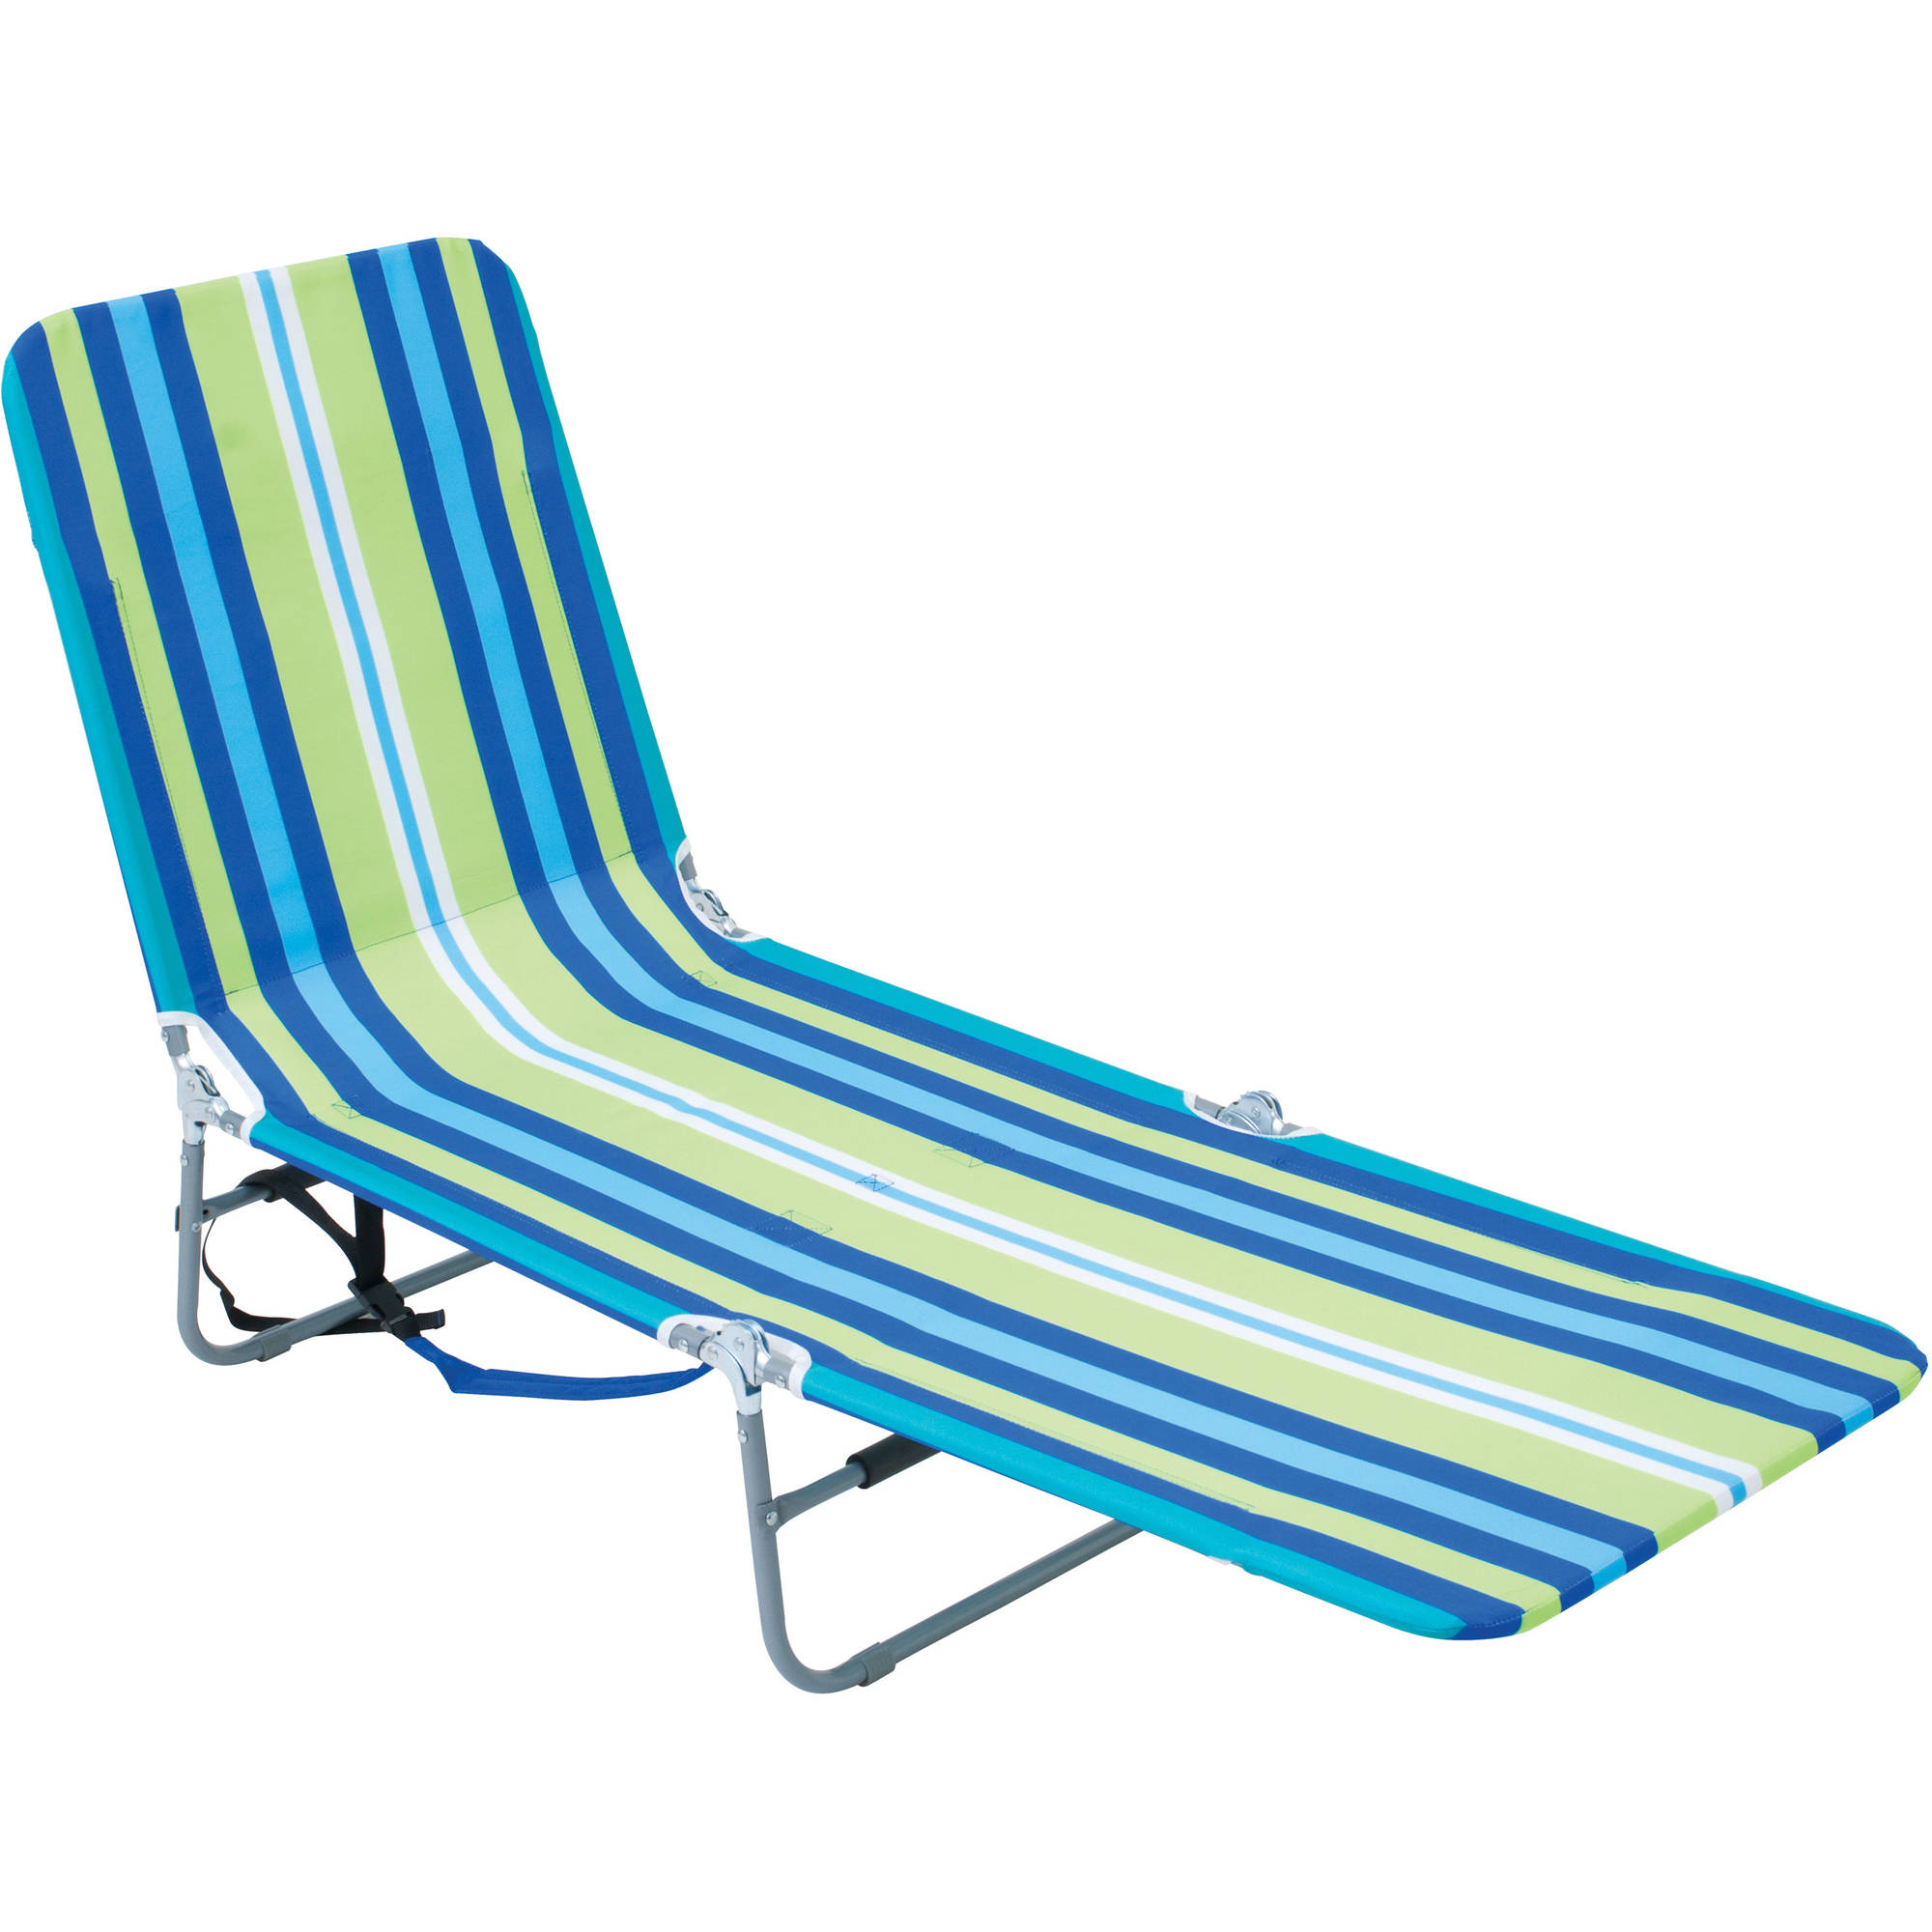 Awesome Fold Up Lounge Chair Inspirational Chair Ideas